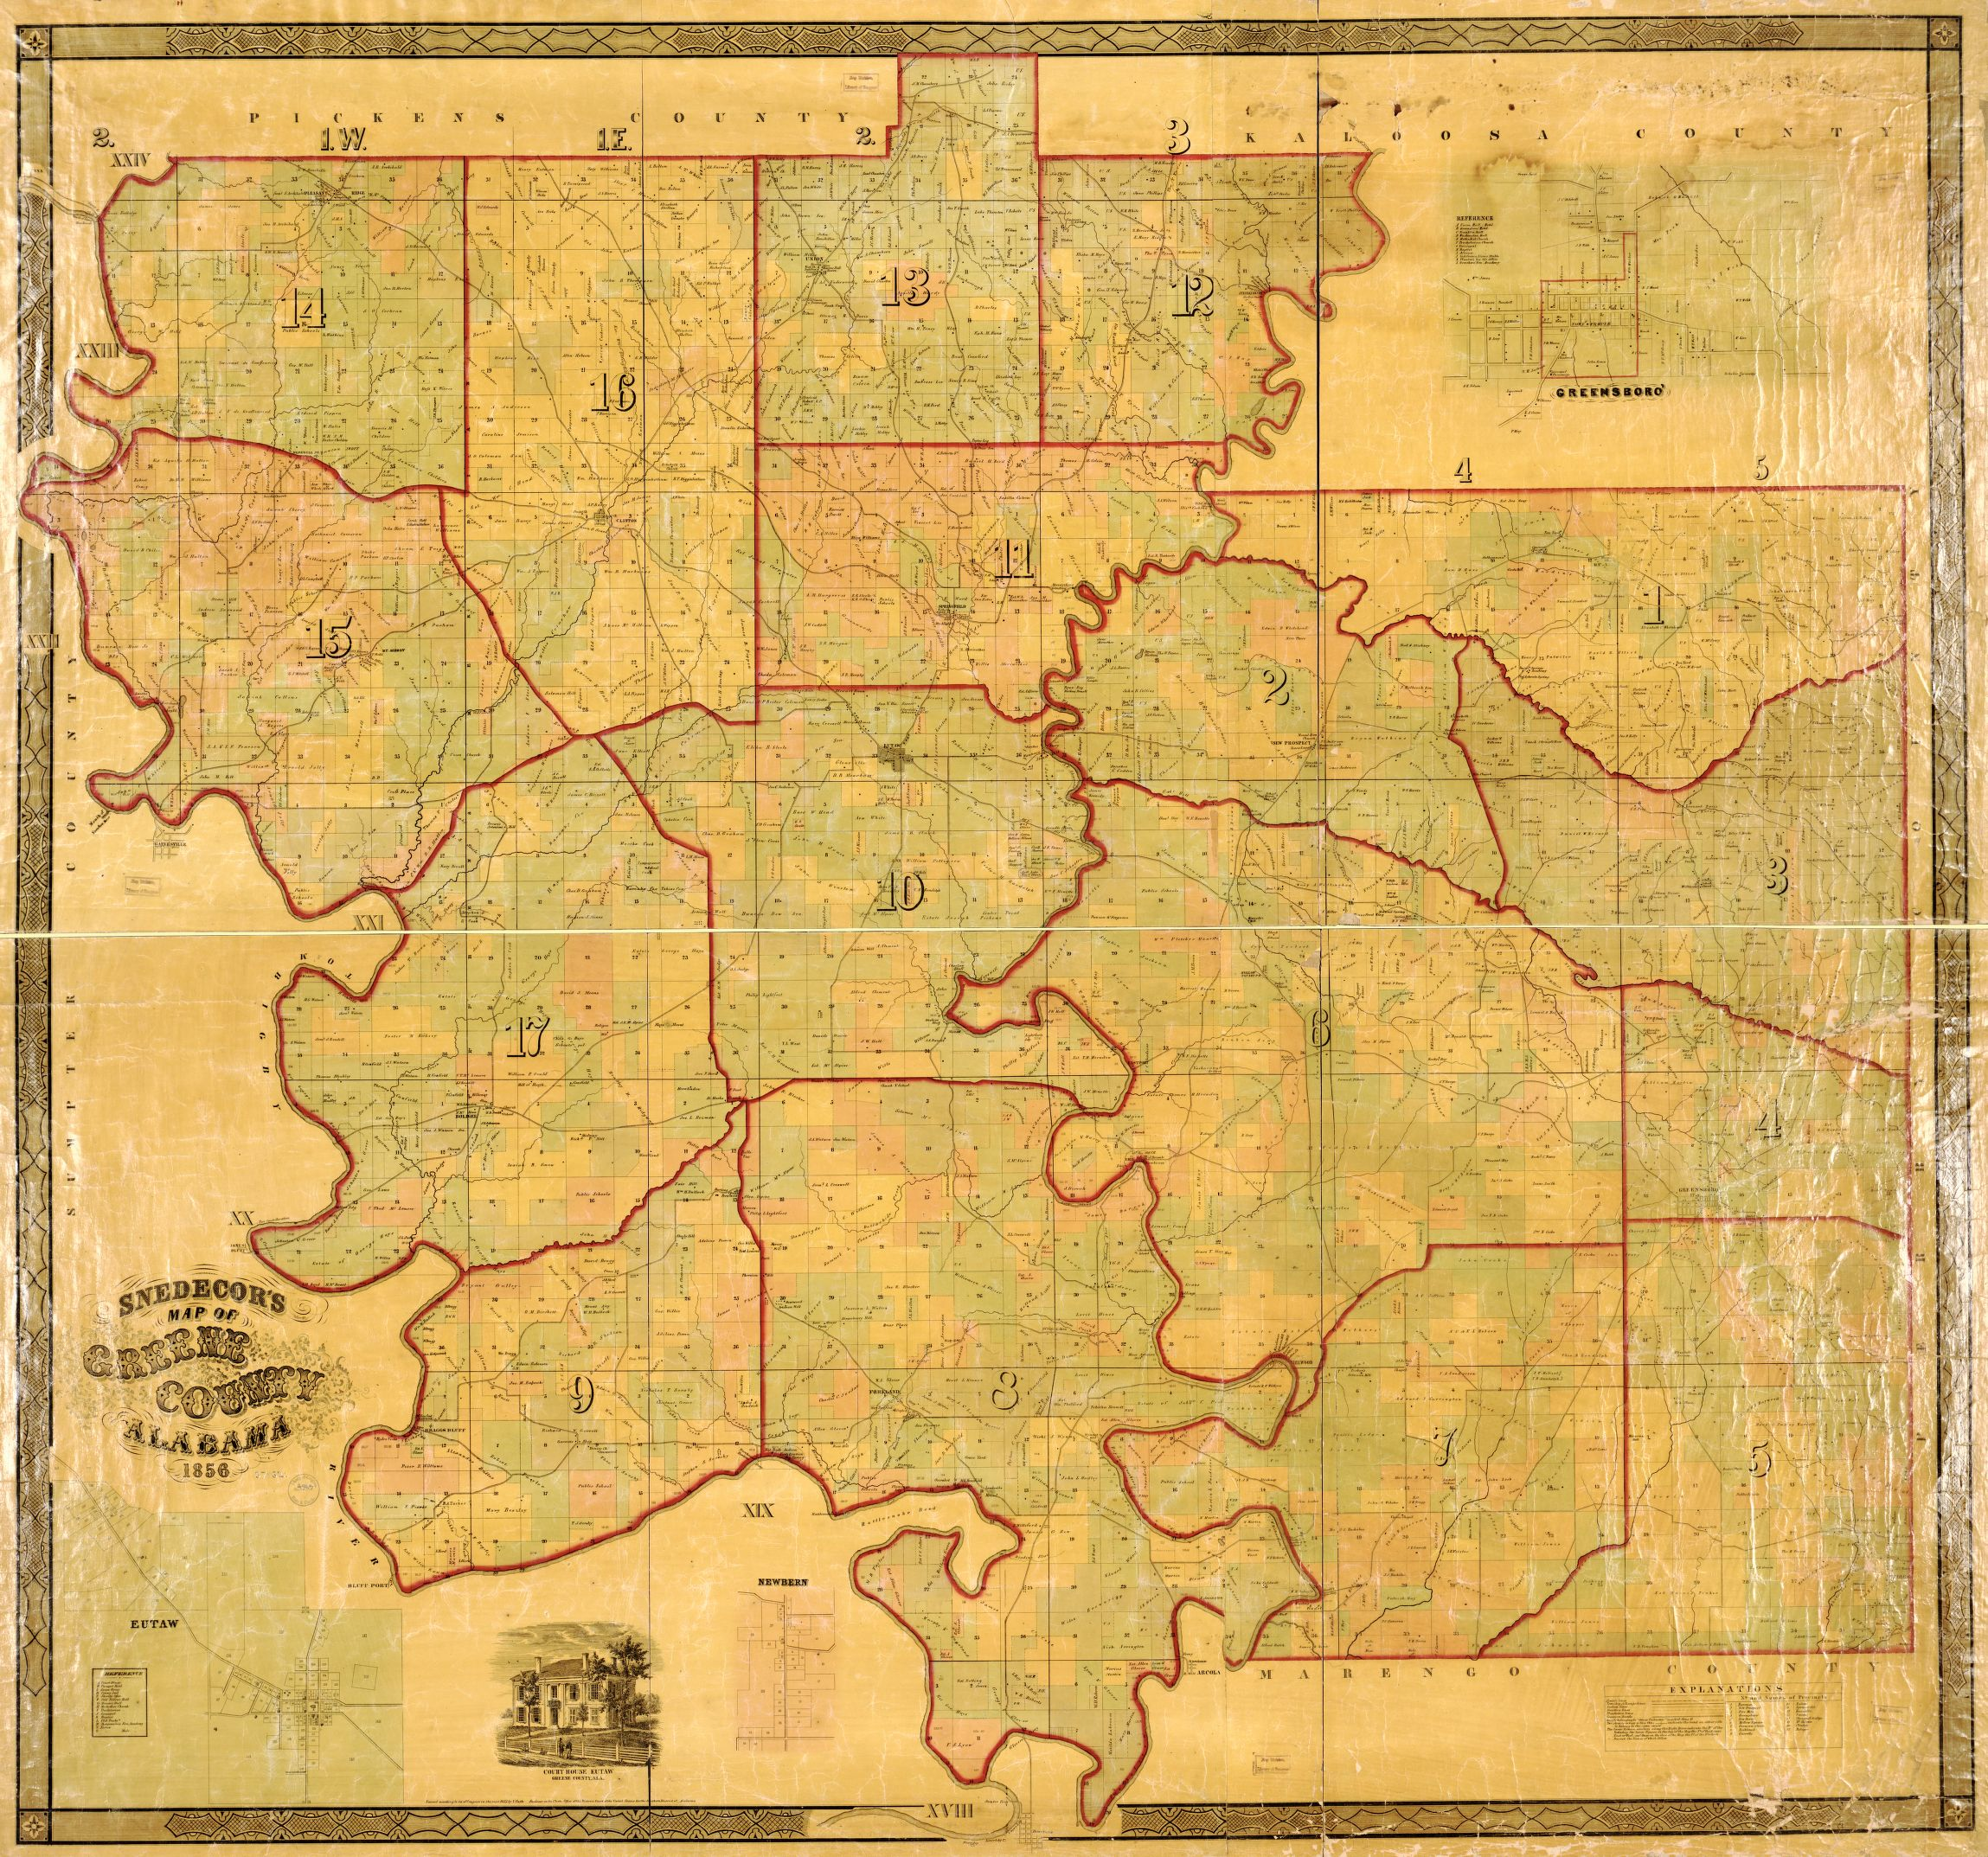 1856 Greene County, AL See District 15 and 13. Map created and published by:  Victoria Gayle Snedecor (1824-1888)